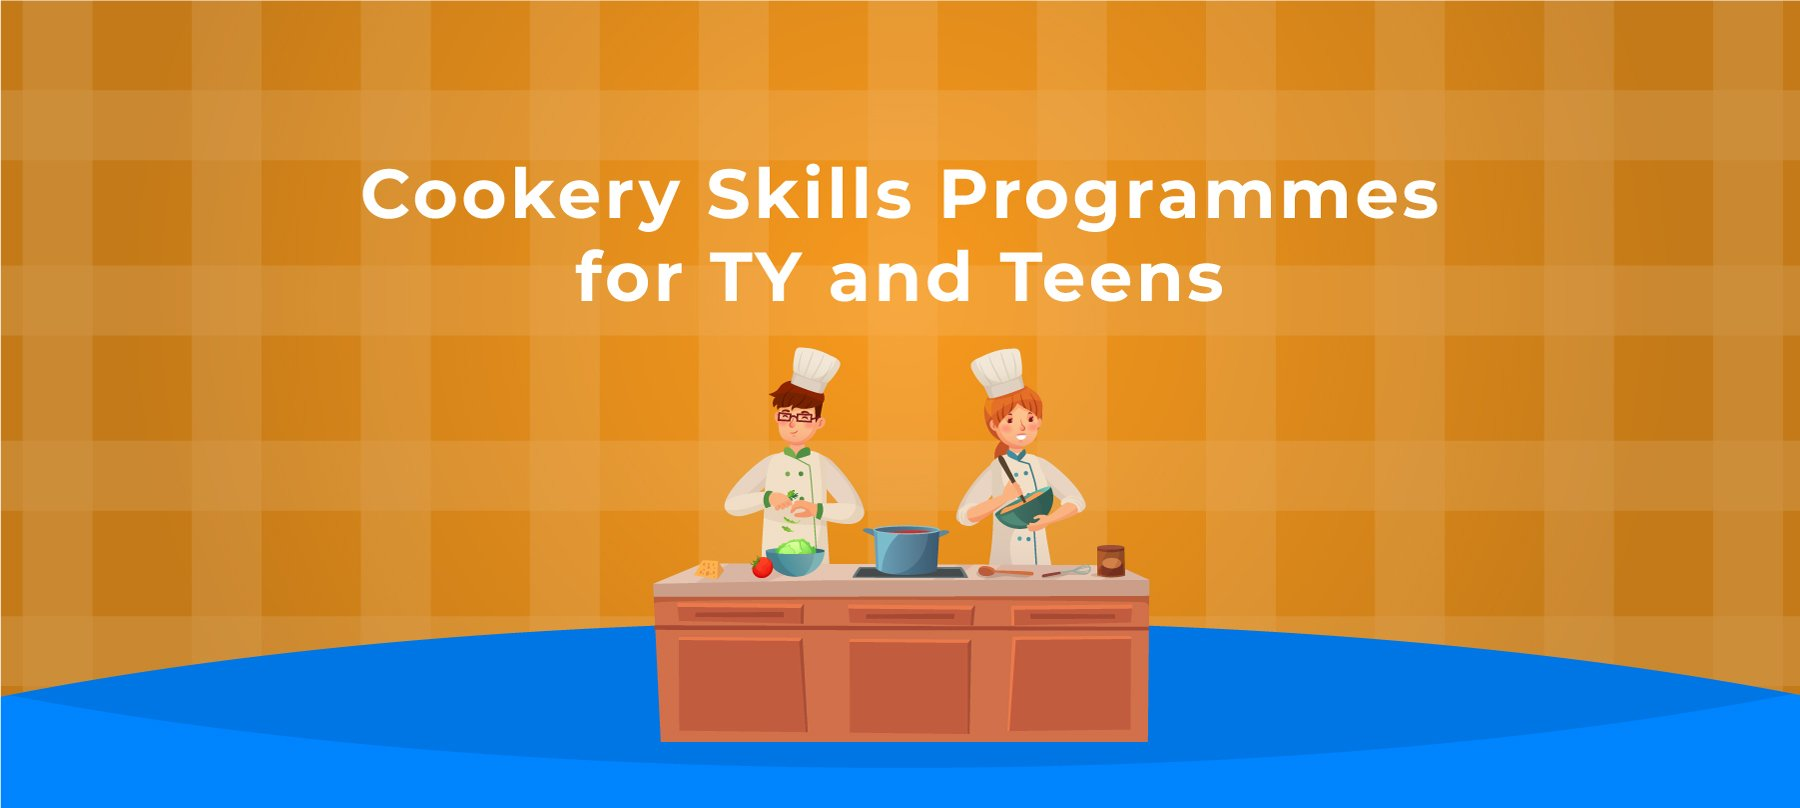 Cookery Skills Programmes for TY and Teens